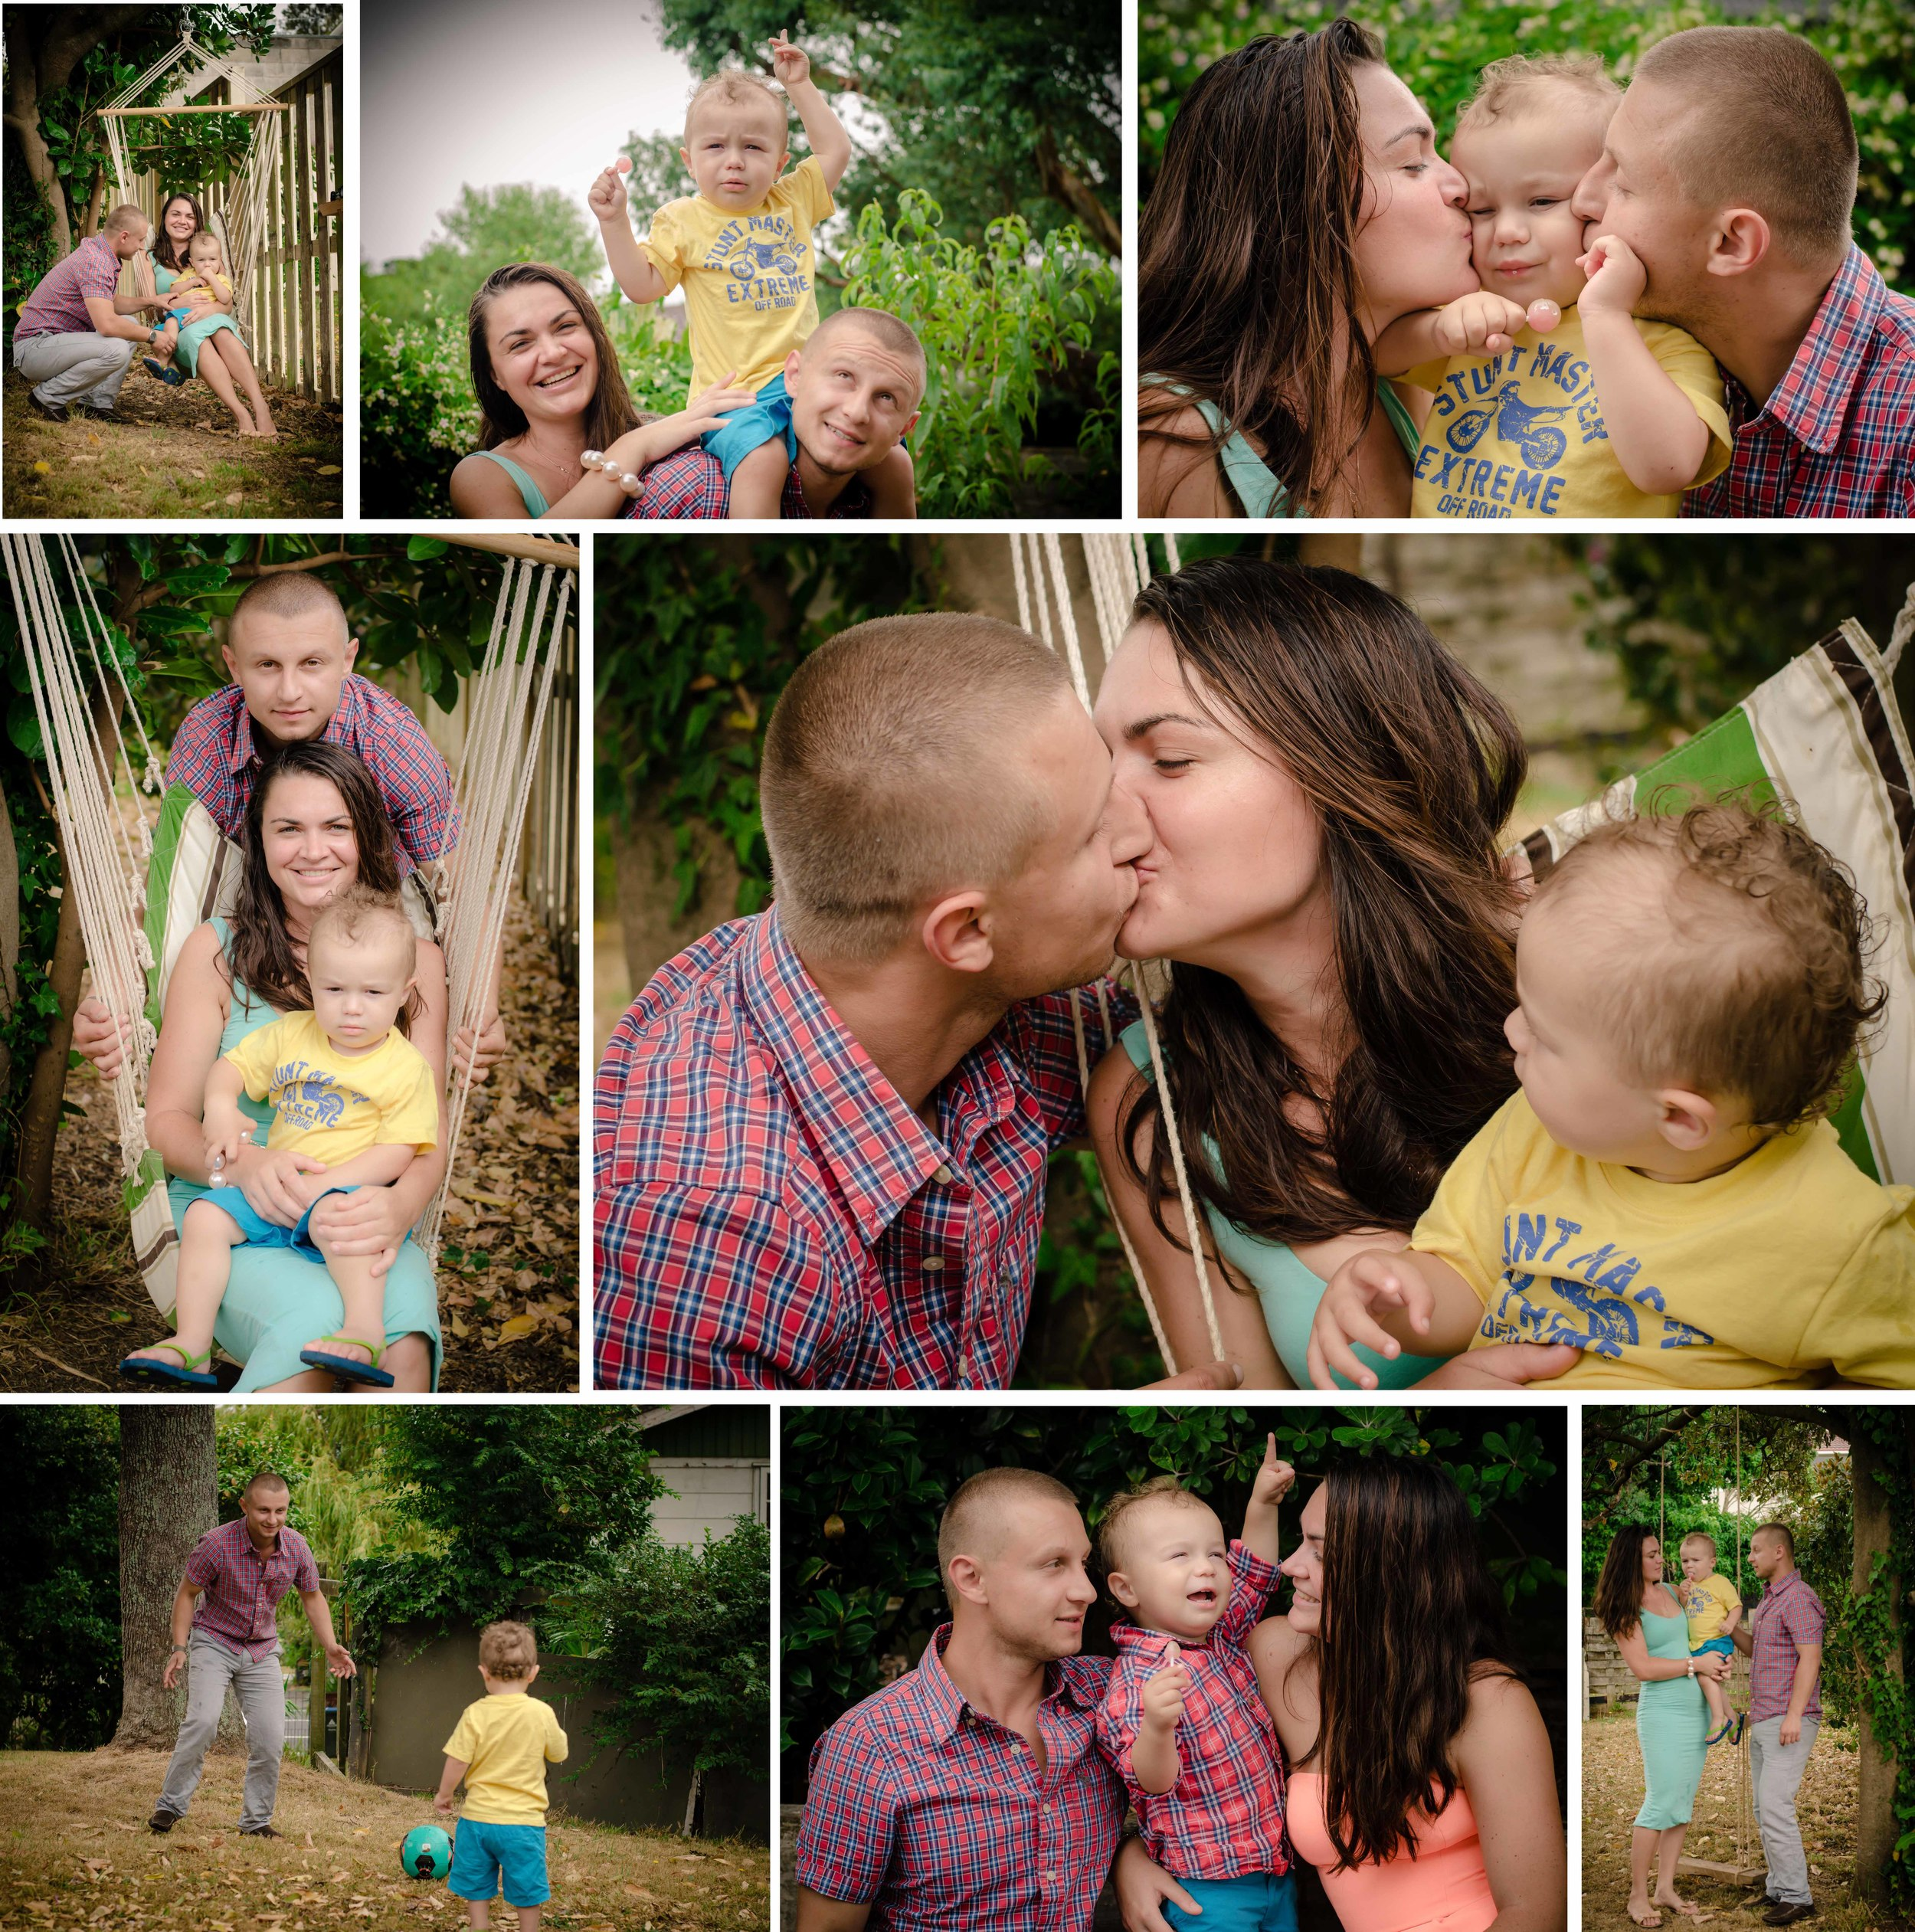 Rainy family session at the park {Kids-children photographer Auckland NZ}